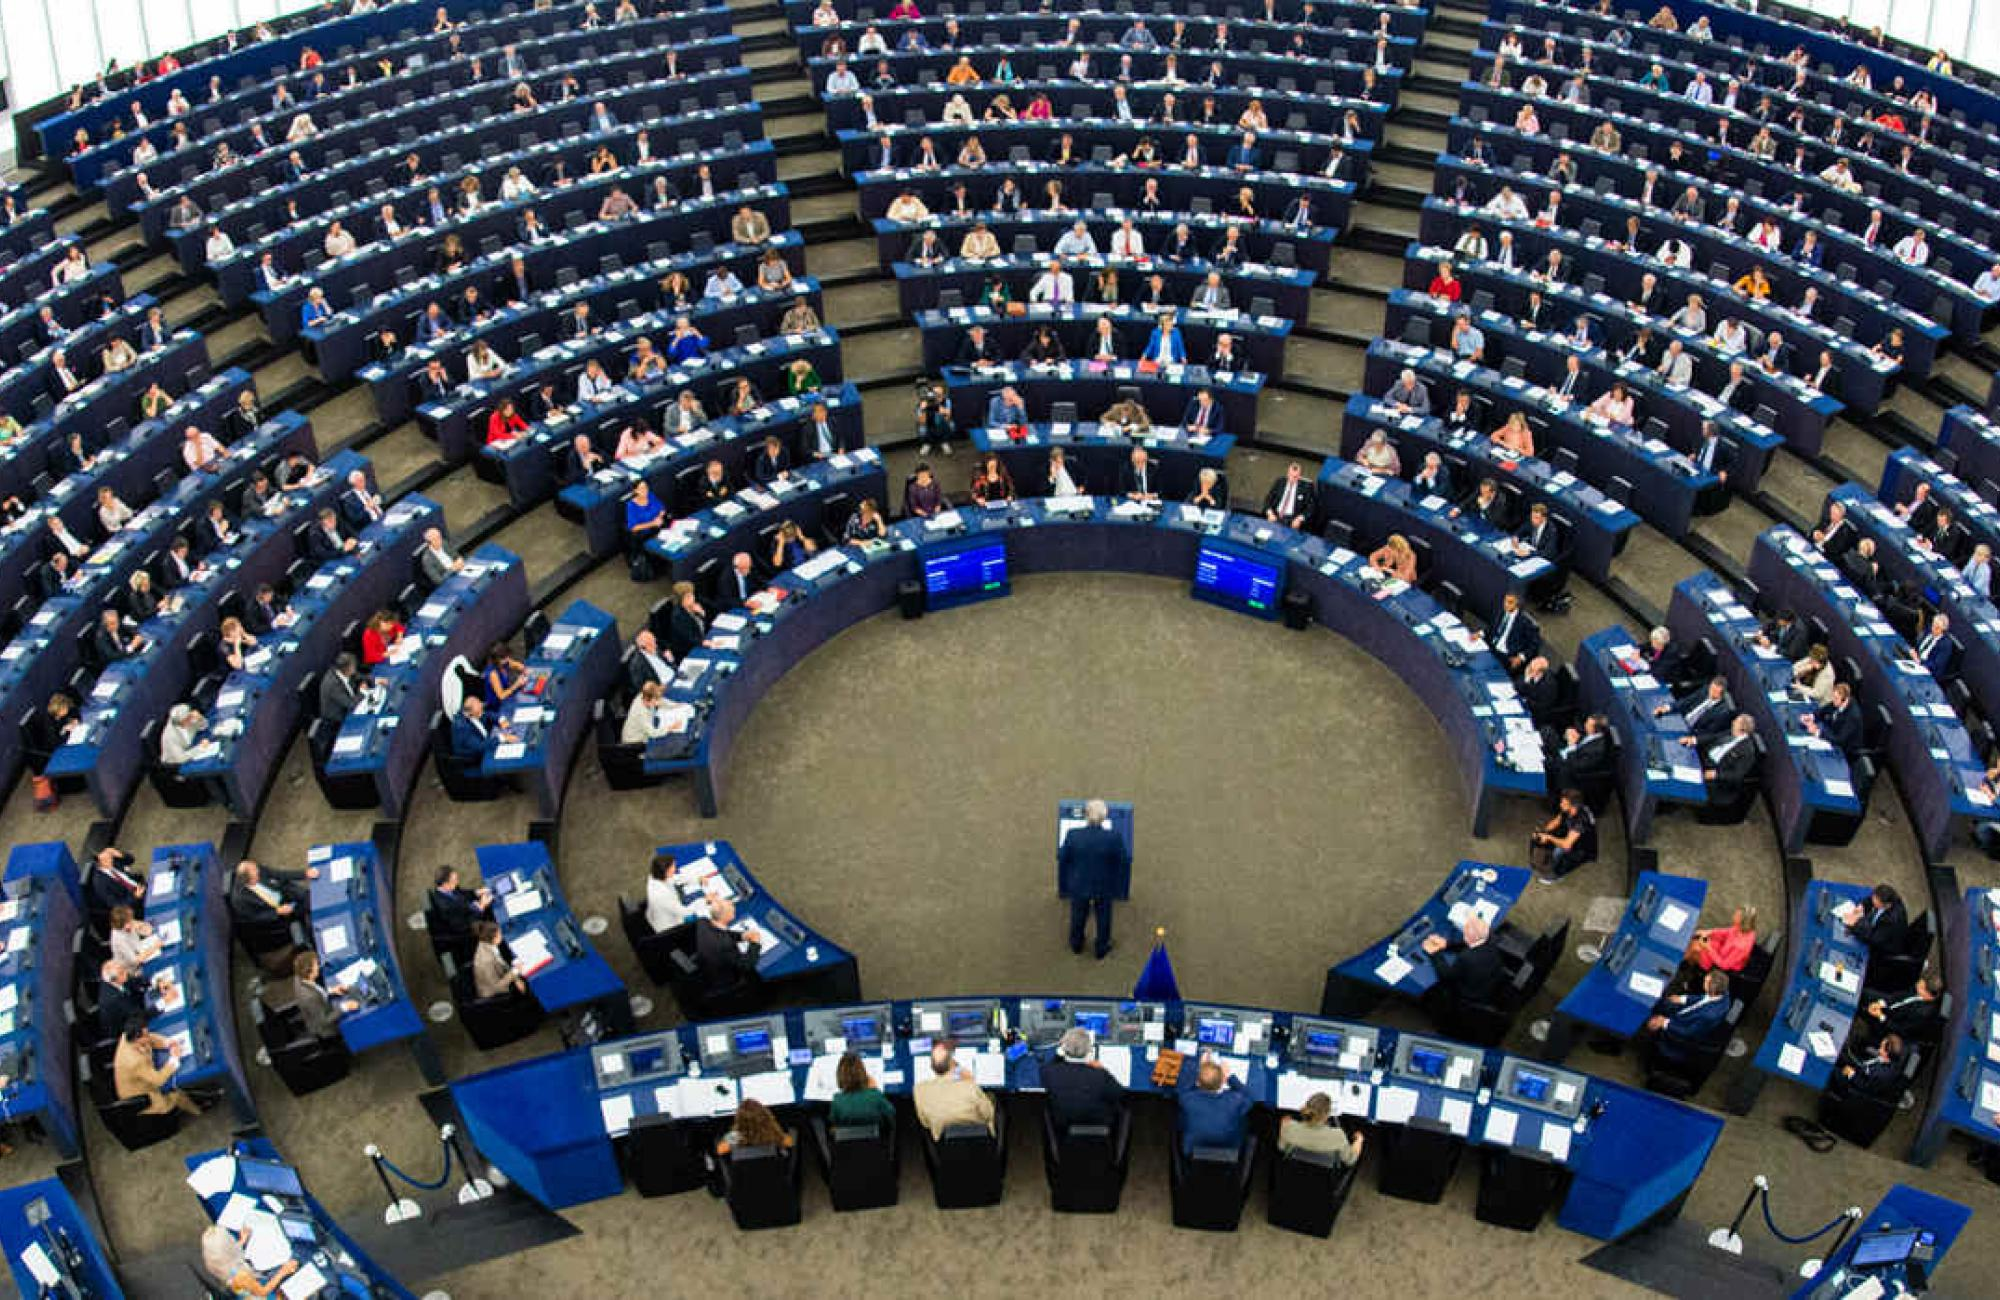 State of the Union_© European Union 2018 - European Parliament